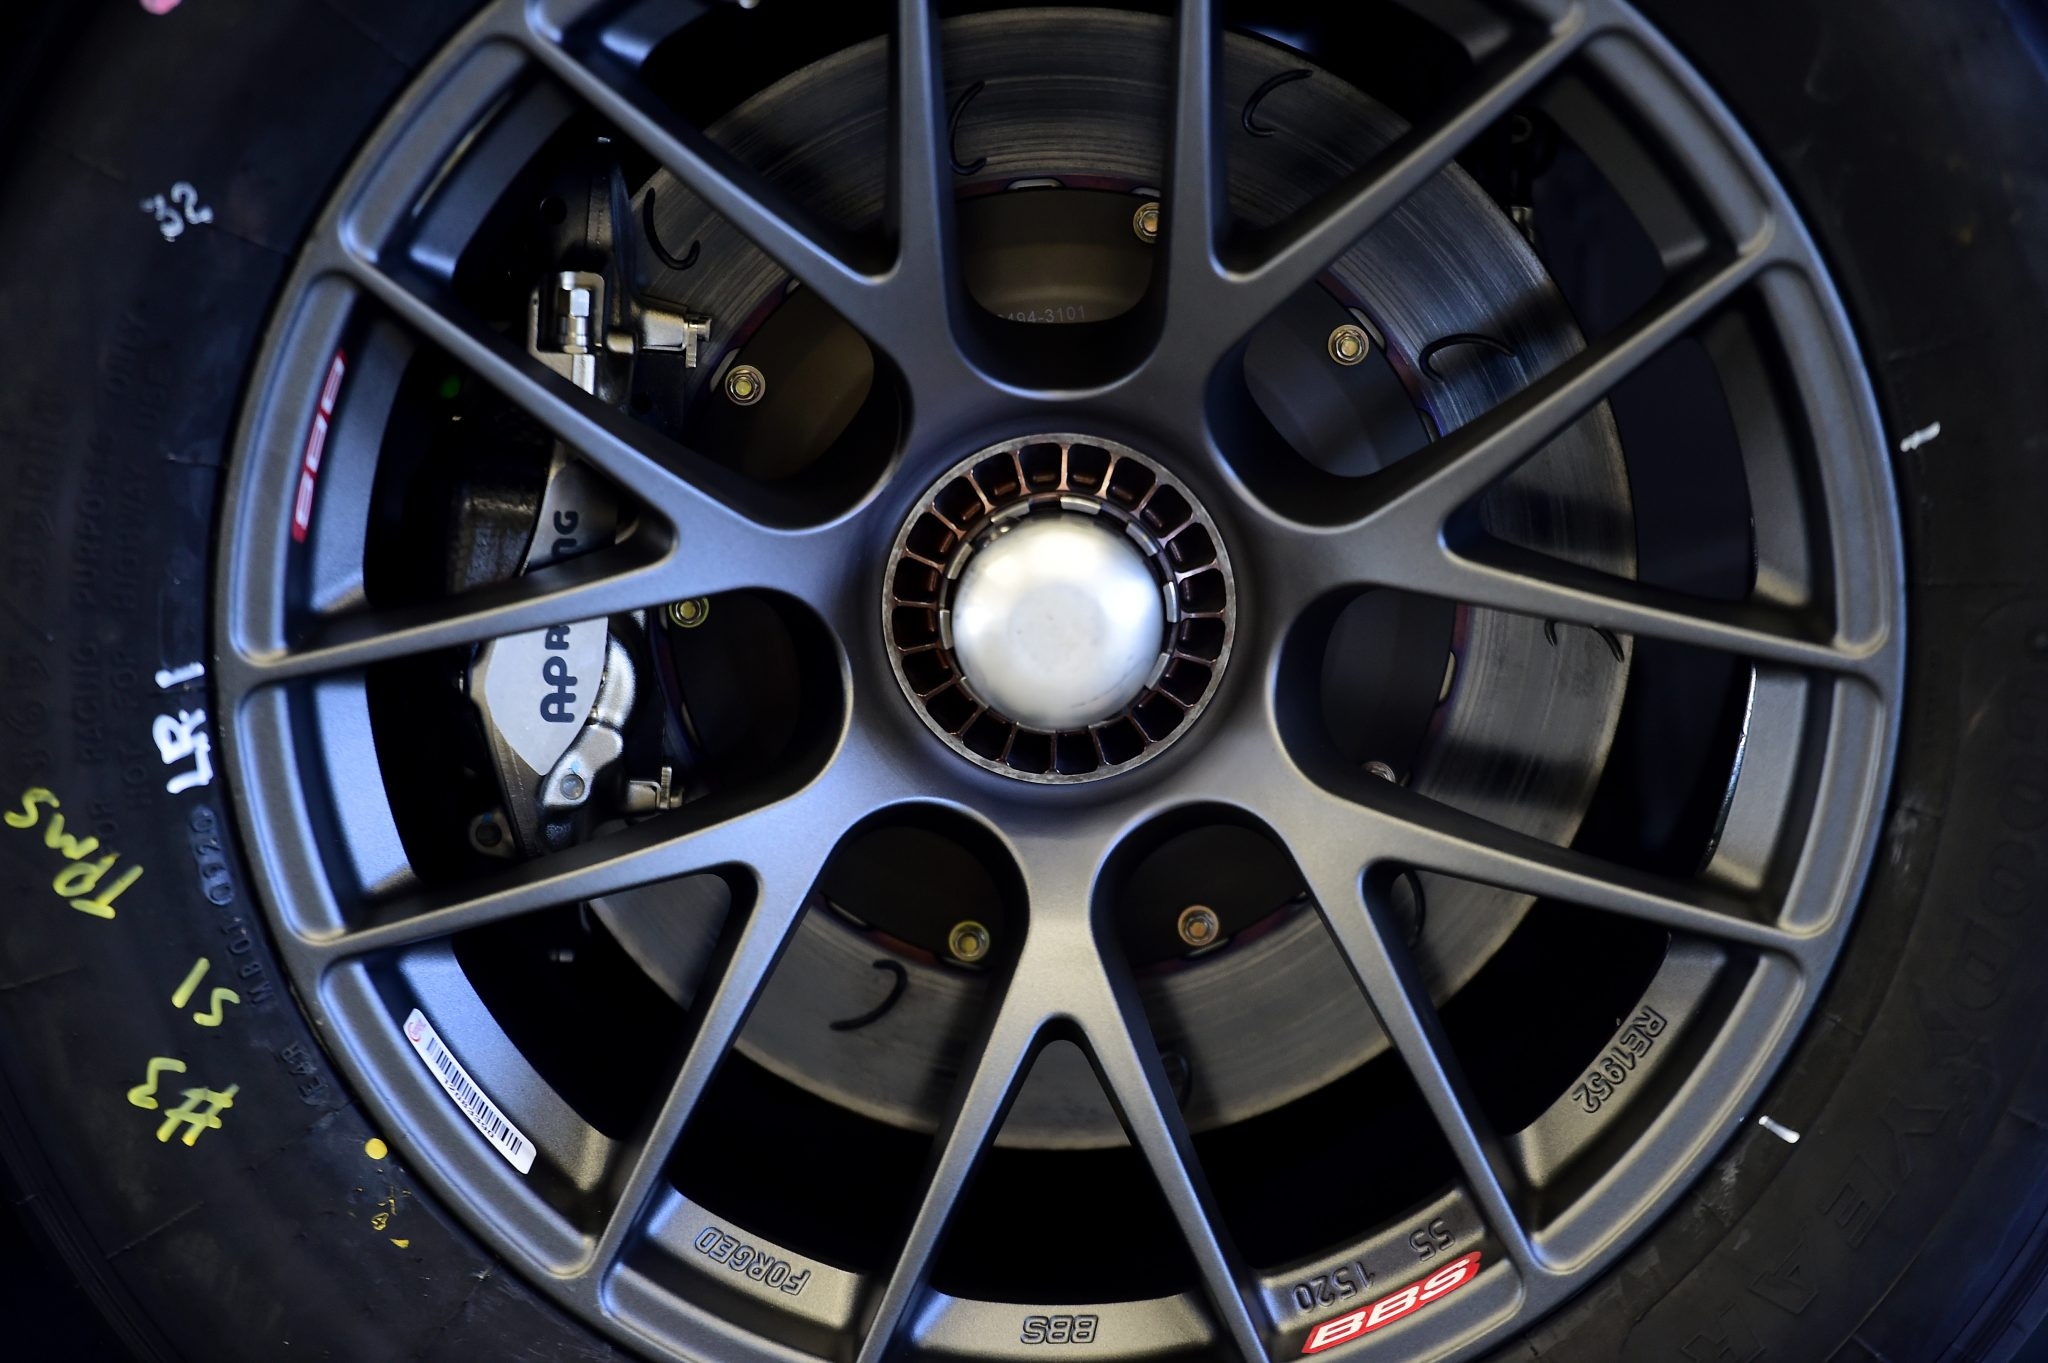 CONCORD, NORTH CAROLINA - NOVEMBER 16: A detailed view of the wheels used during the NASCAR Cup Series test at Charlotte Motor Speedway on November 16, 2020 in Concord, North Carolina. (Photo by Jared C. Tilton/Getty Images) | Getty Images